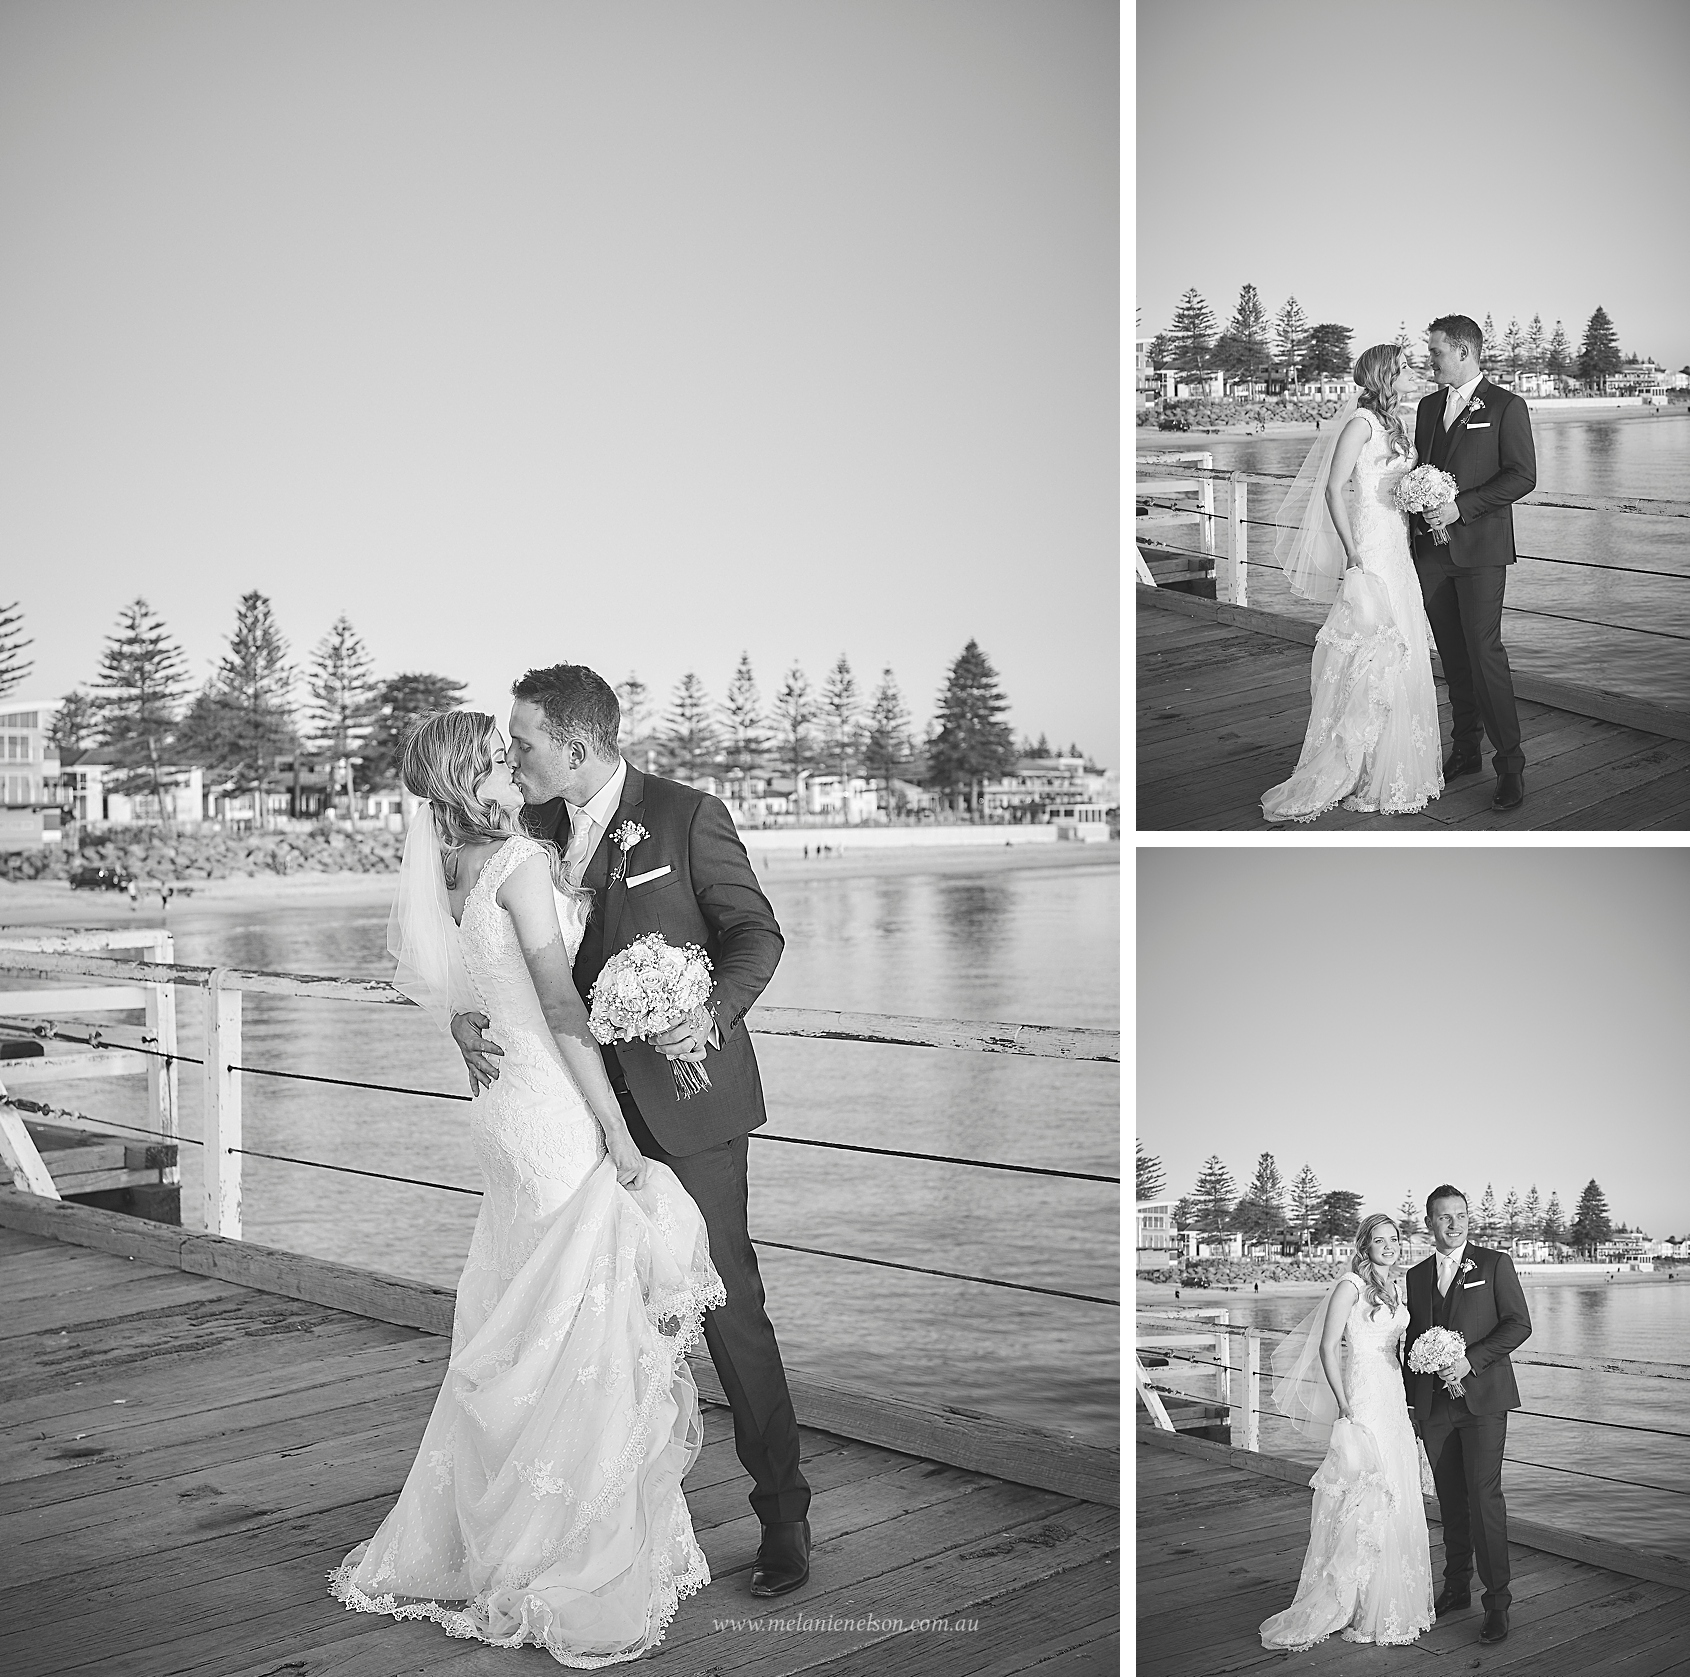 adelaide_wedding_photographers_019.jpg